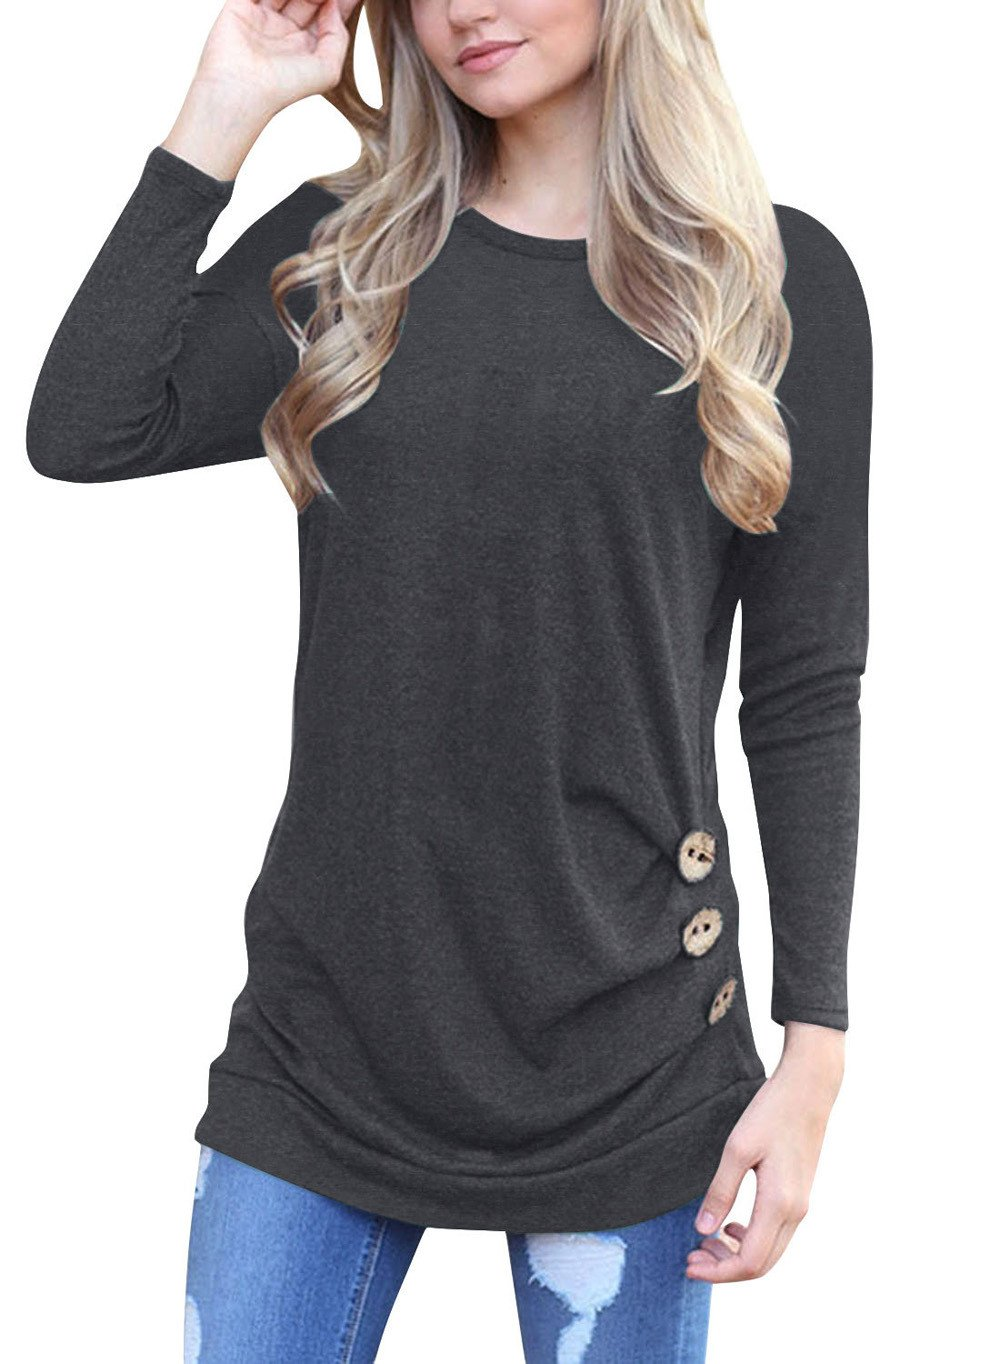 Women Tunic Tops Long Sleeve Button Loose Round Neck Solid Color Casual Blouse Shirt (S, Black)